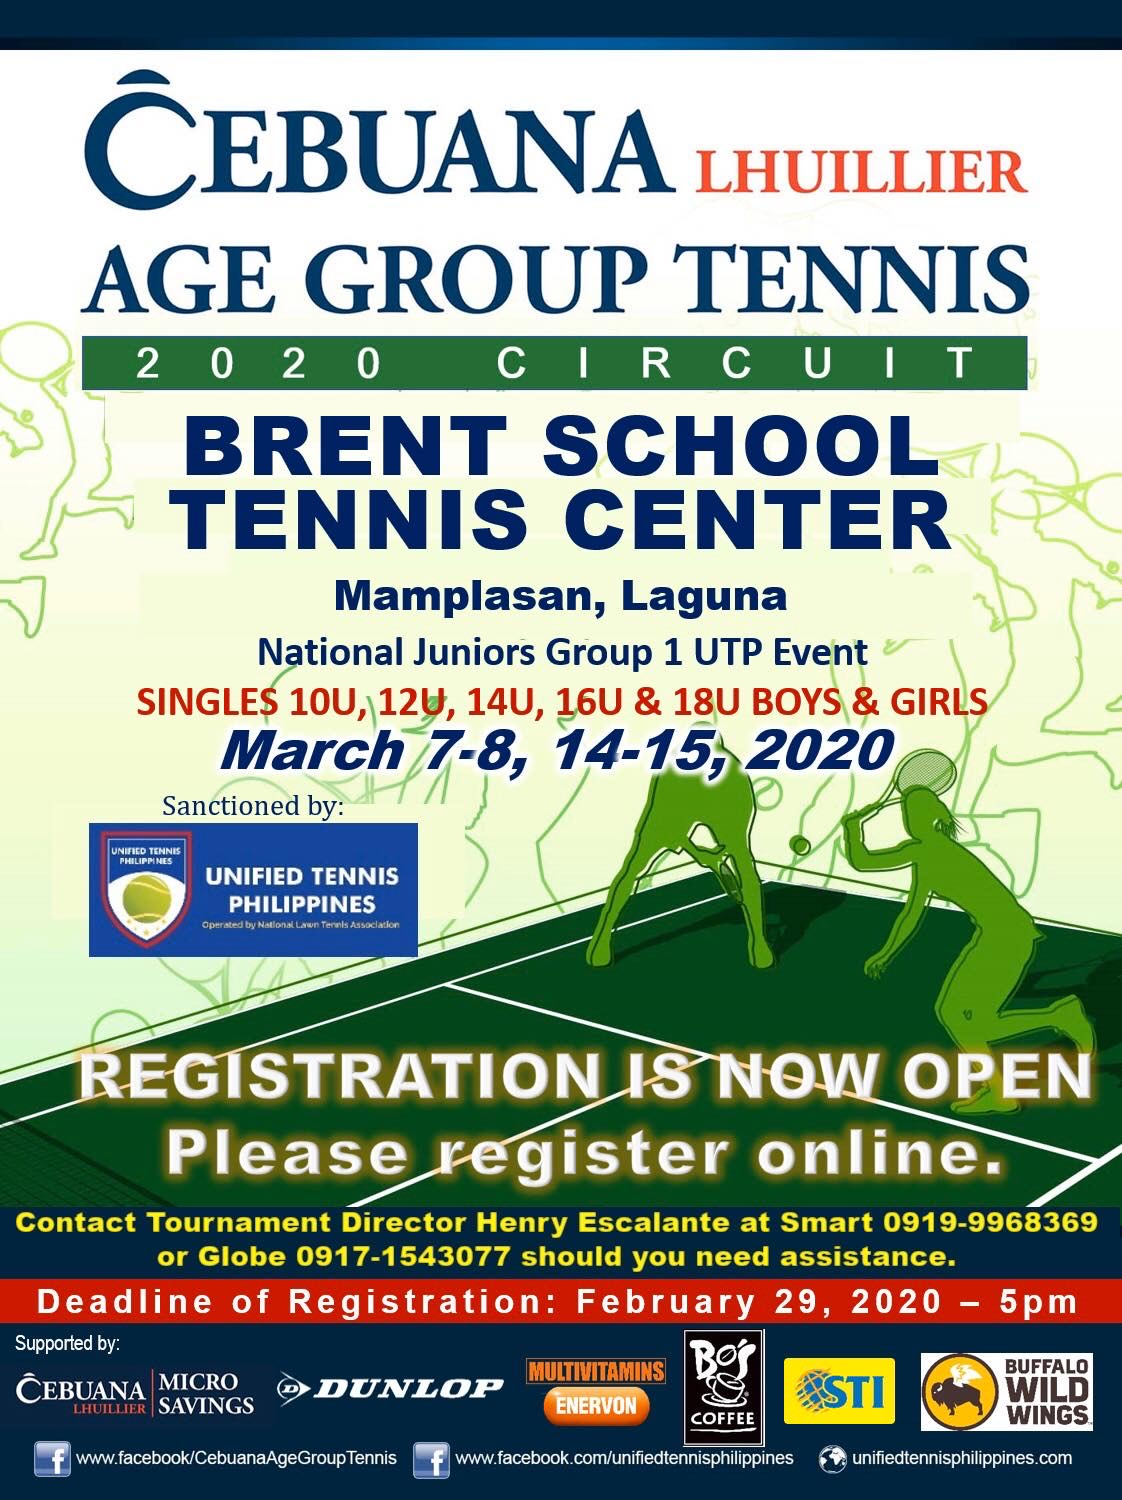 Cebuana Lhuillier Age Group Tennis 2020 Circuit